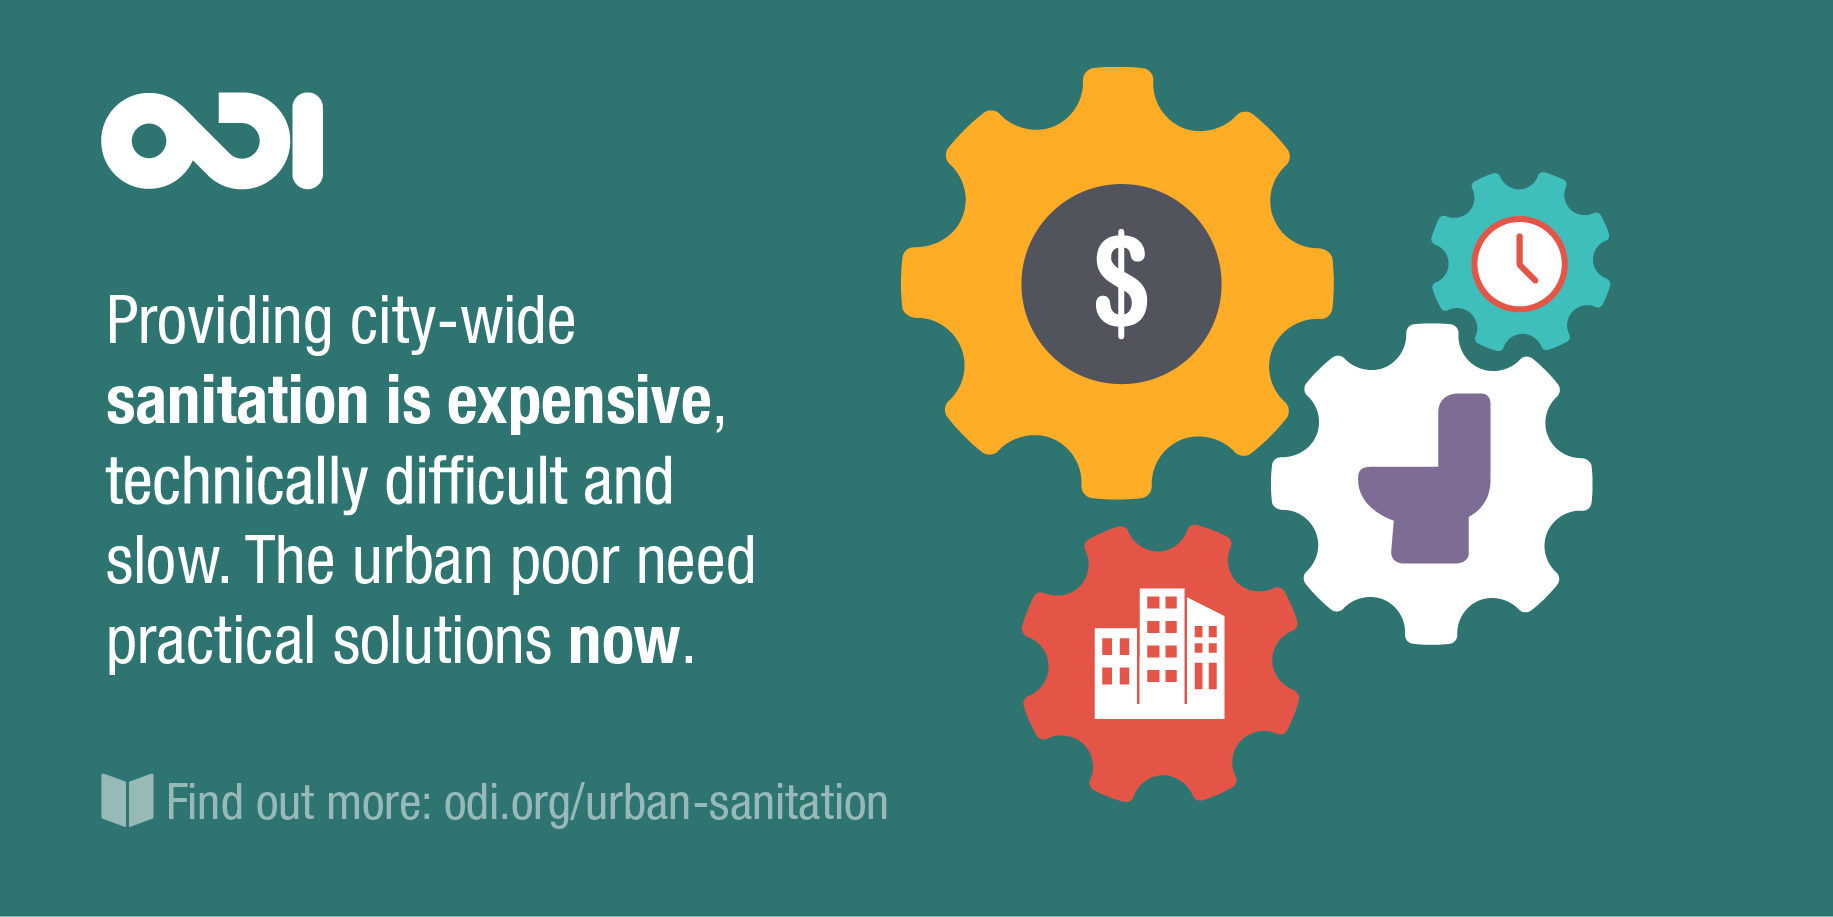 Providing city-wide sanitation is expensive, technically difficult and slow.